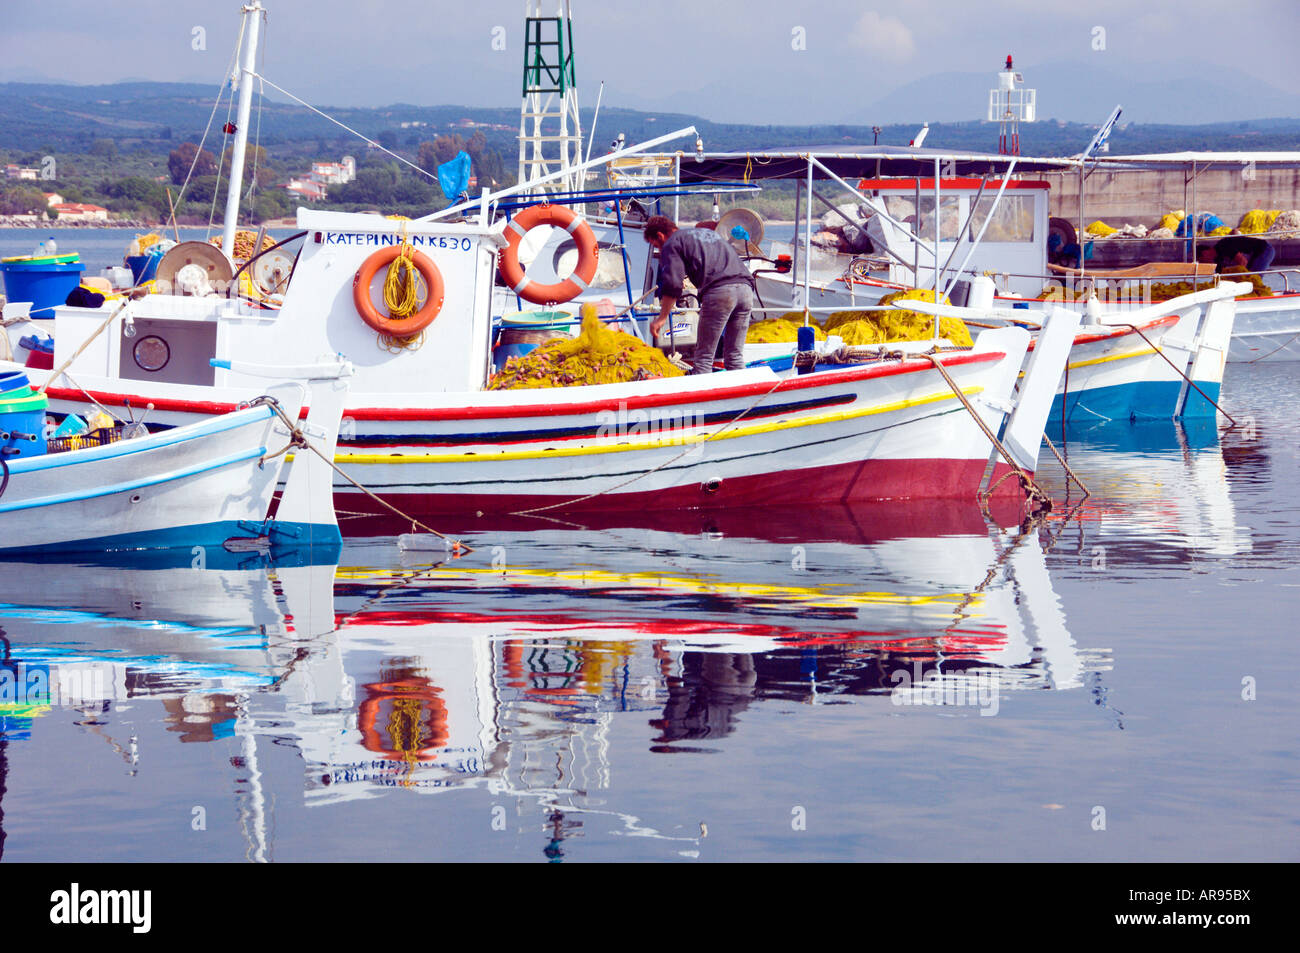 Colorful fishing boats in the small village of Pitalidi Peloponesse Greece - Stock Image